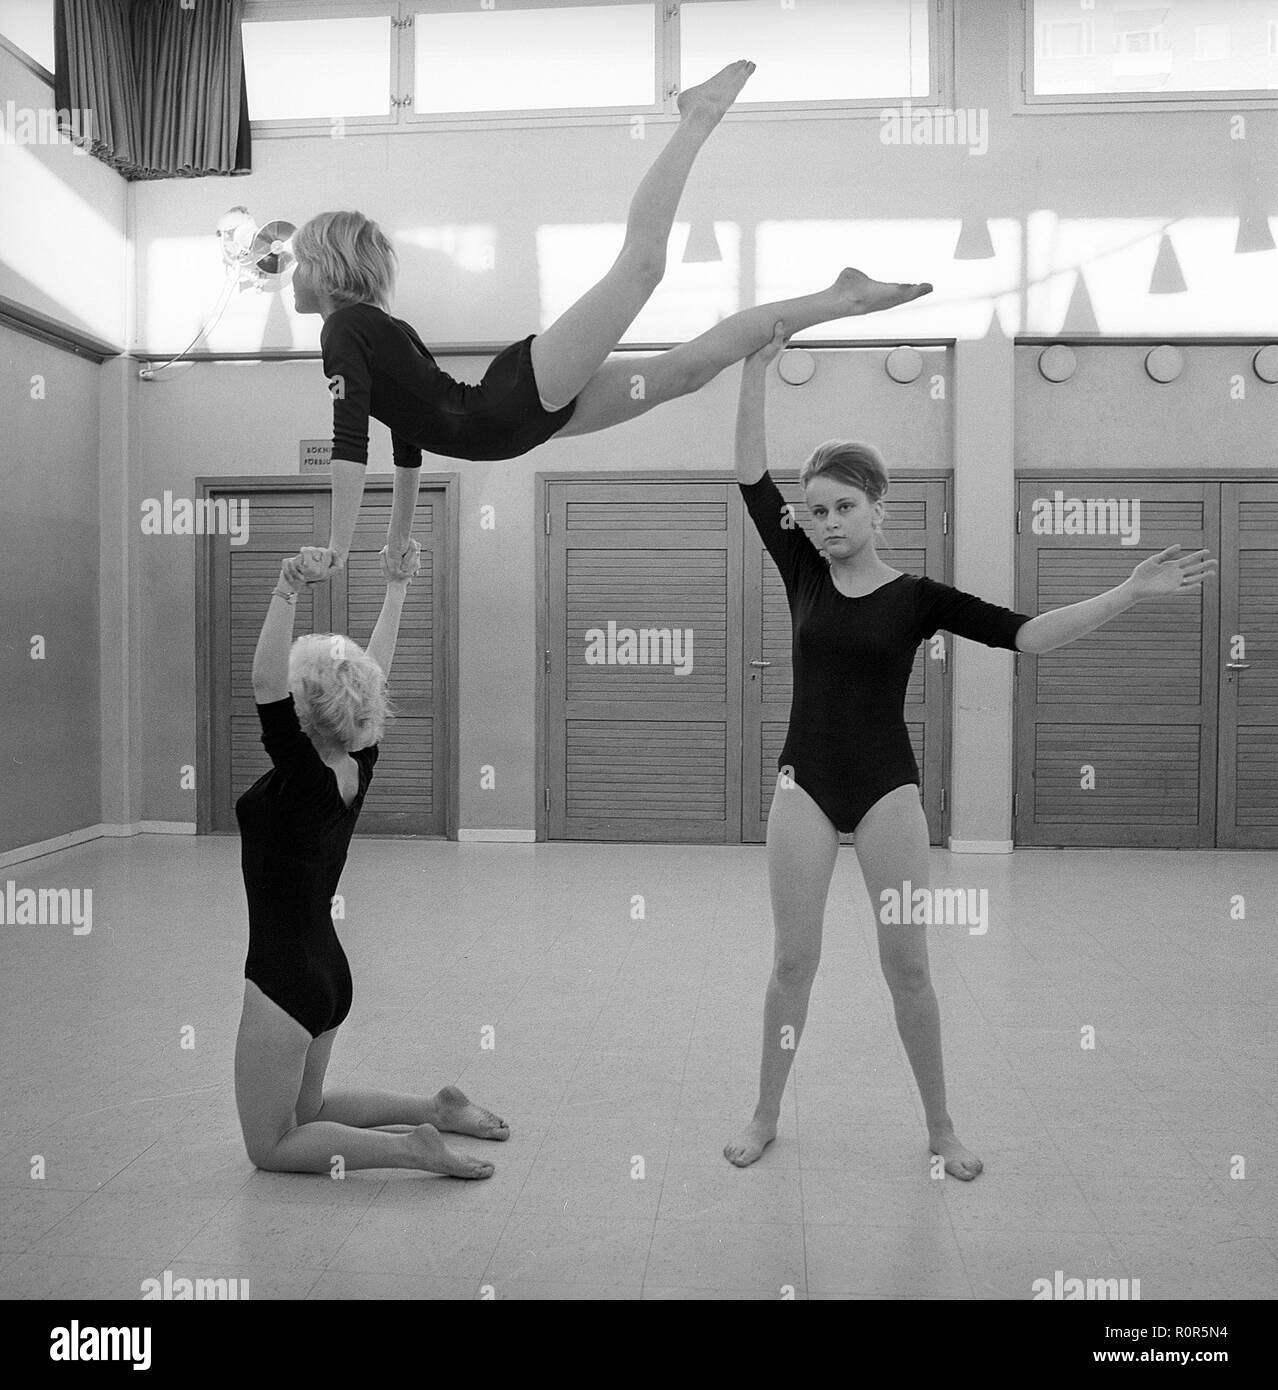 Gymnastics in the 1960s. Three teenage girls are practising gymnastics together in a gymnasium hall. Sweden 1962 - Stock Image